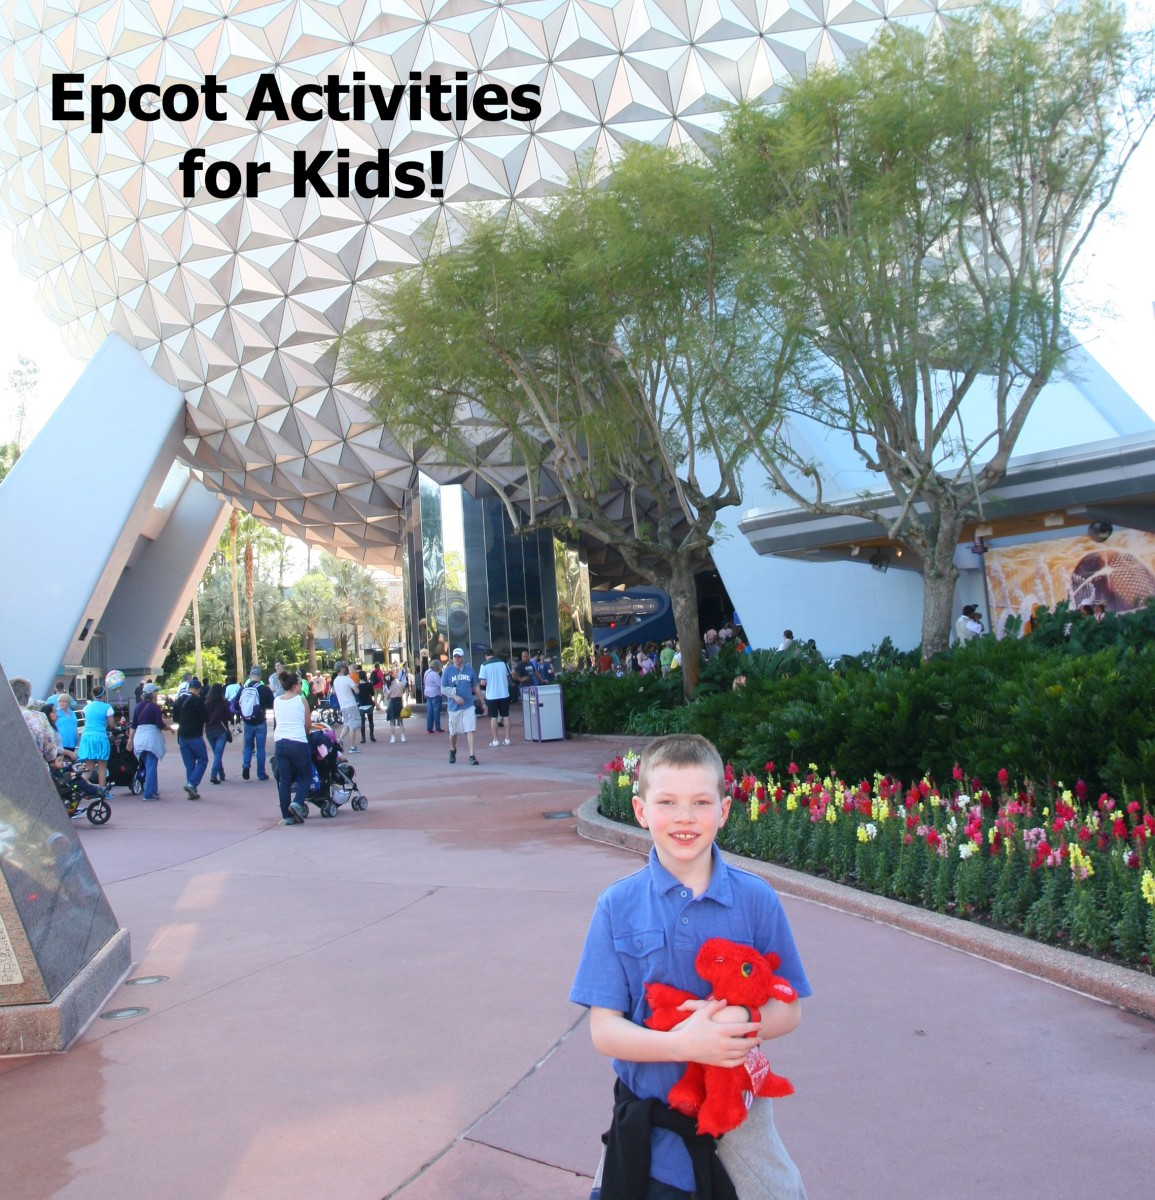 Best Activities in Epcot With Kids